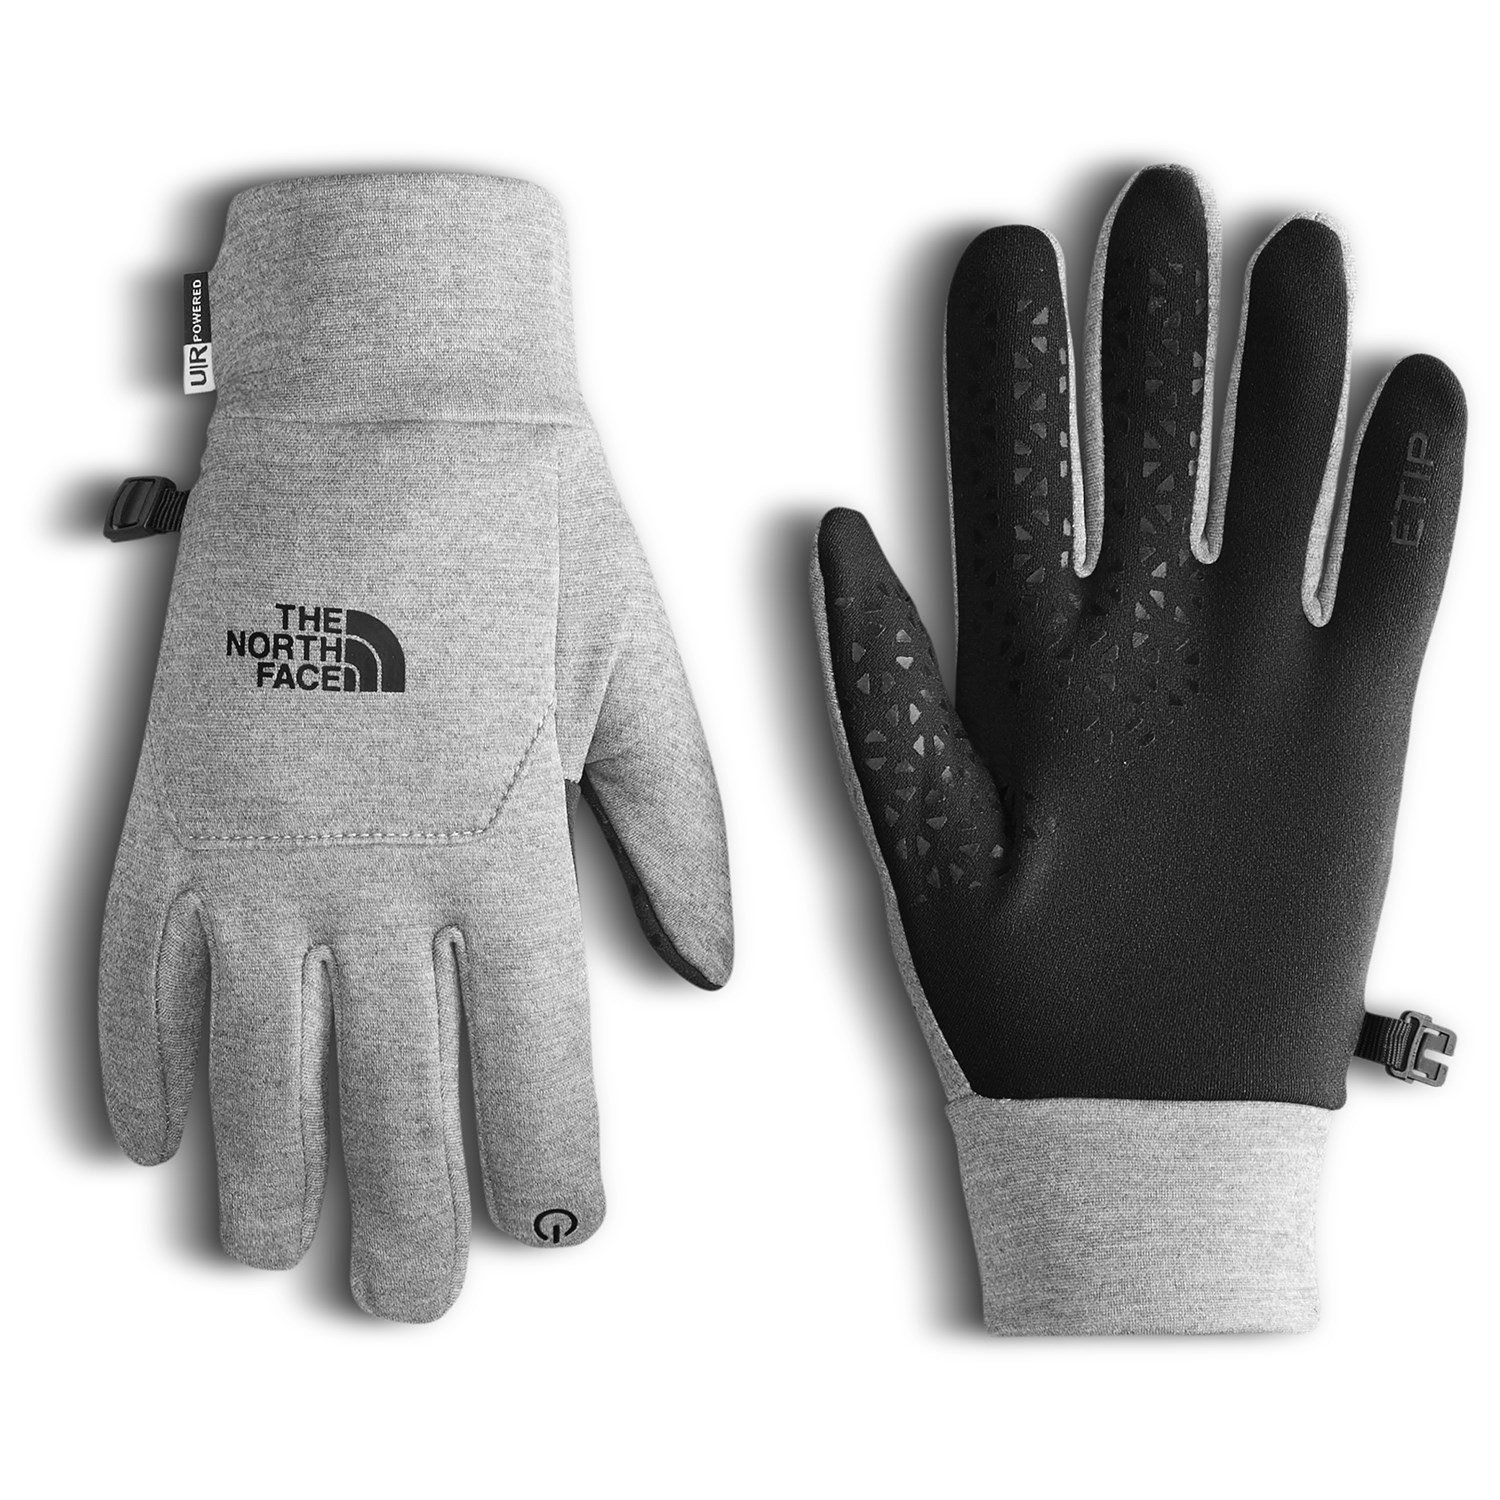 6076f33f0abcf The North Face Etip Gloves